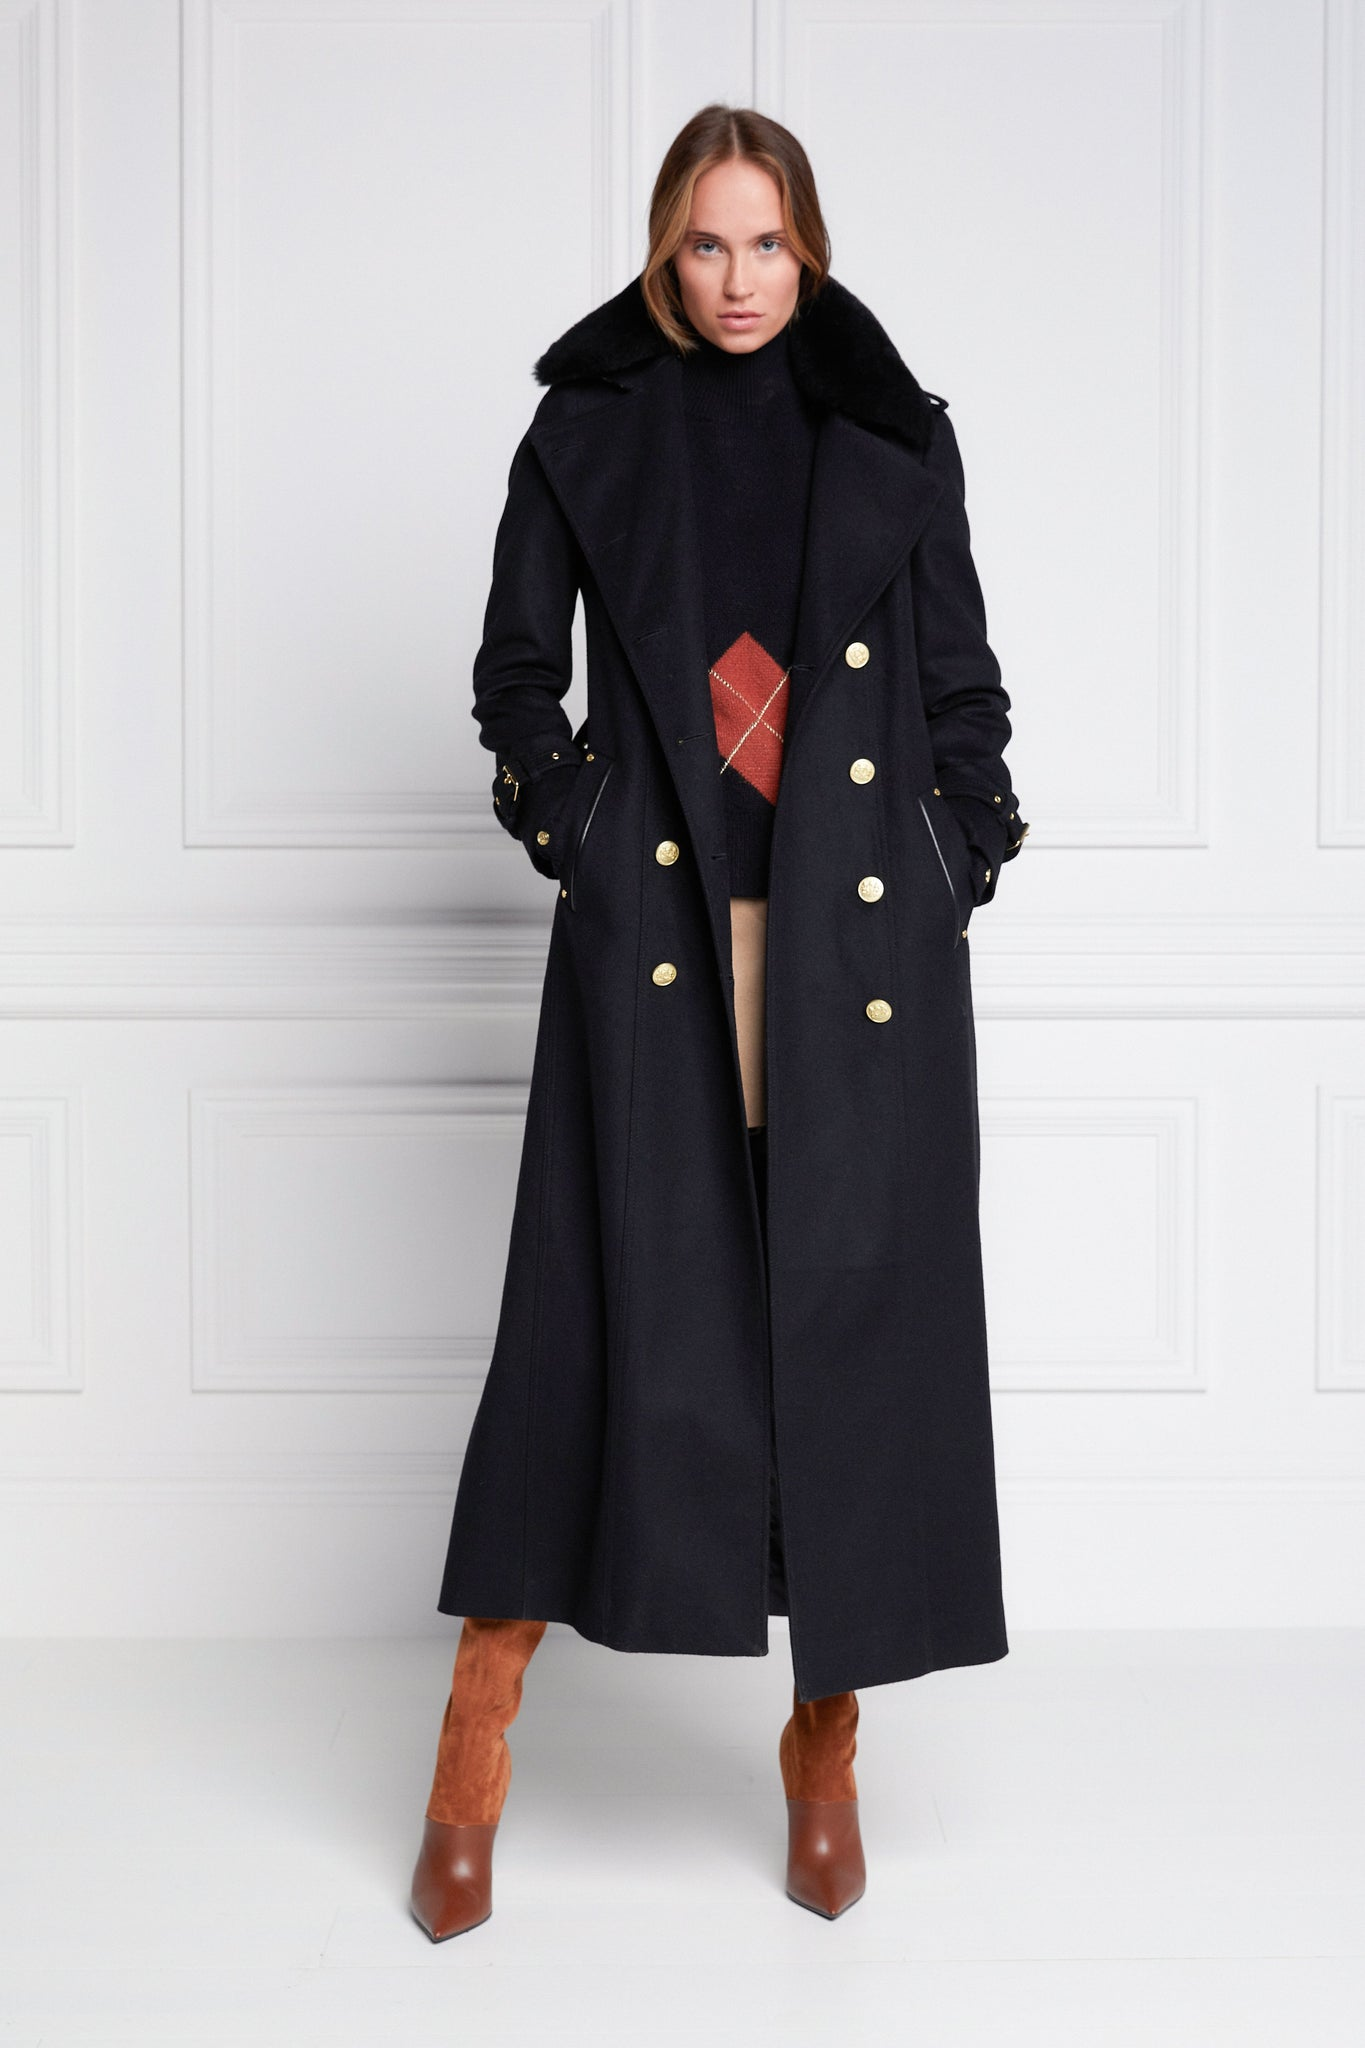 Marlborough Shearling Trench Coat (Soft Black)